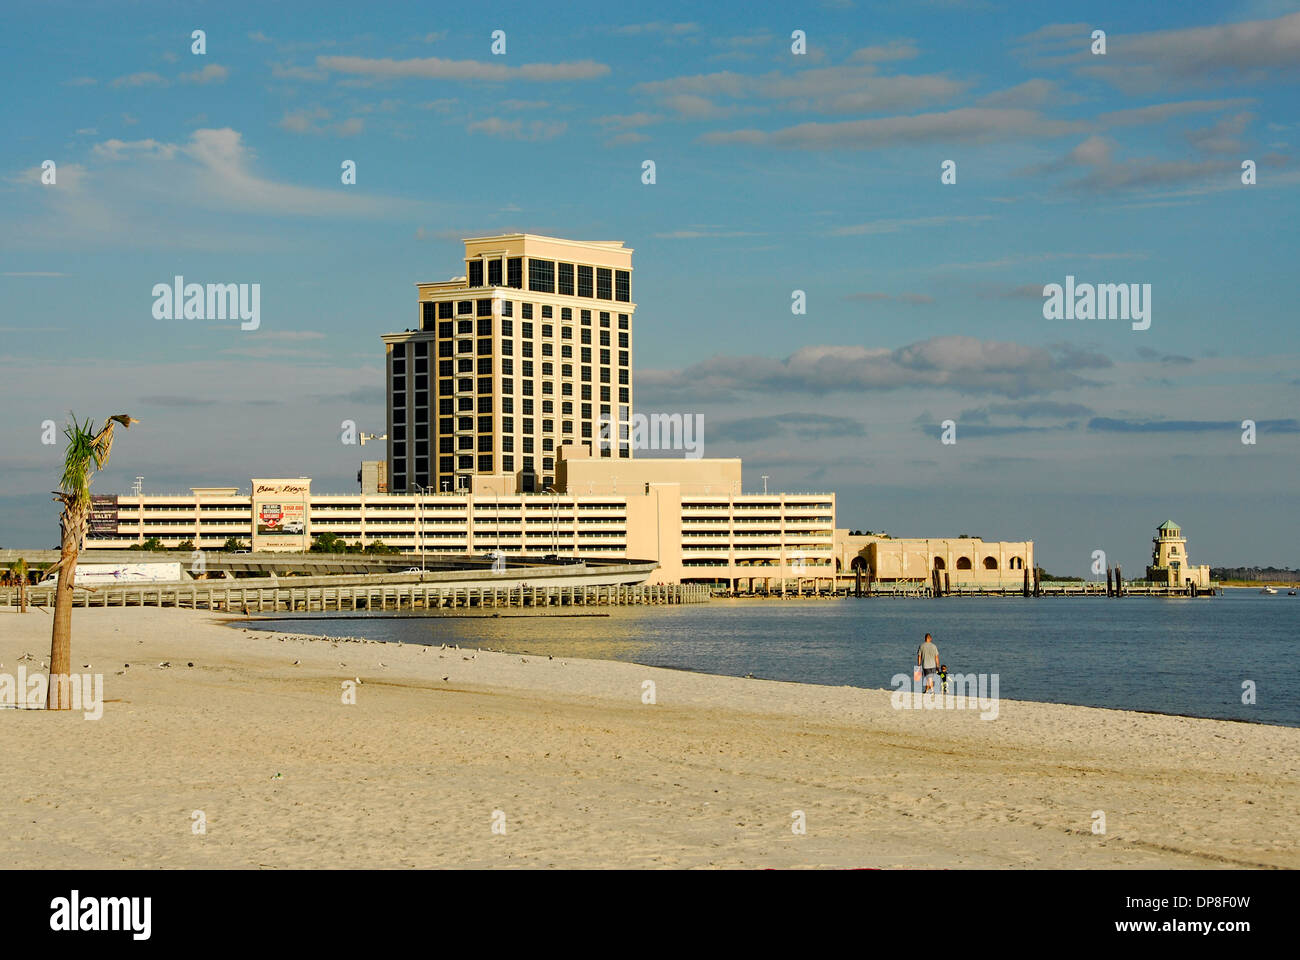 Biloxi Beach And Beau Rivage Hotel And Casino Resort In Biloxi